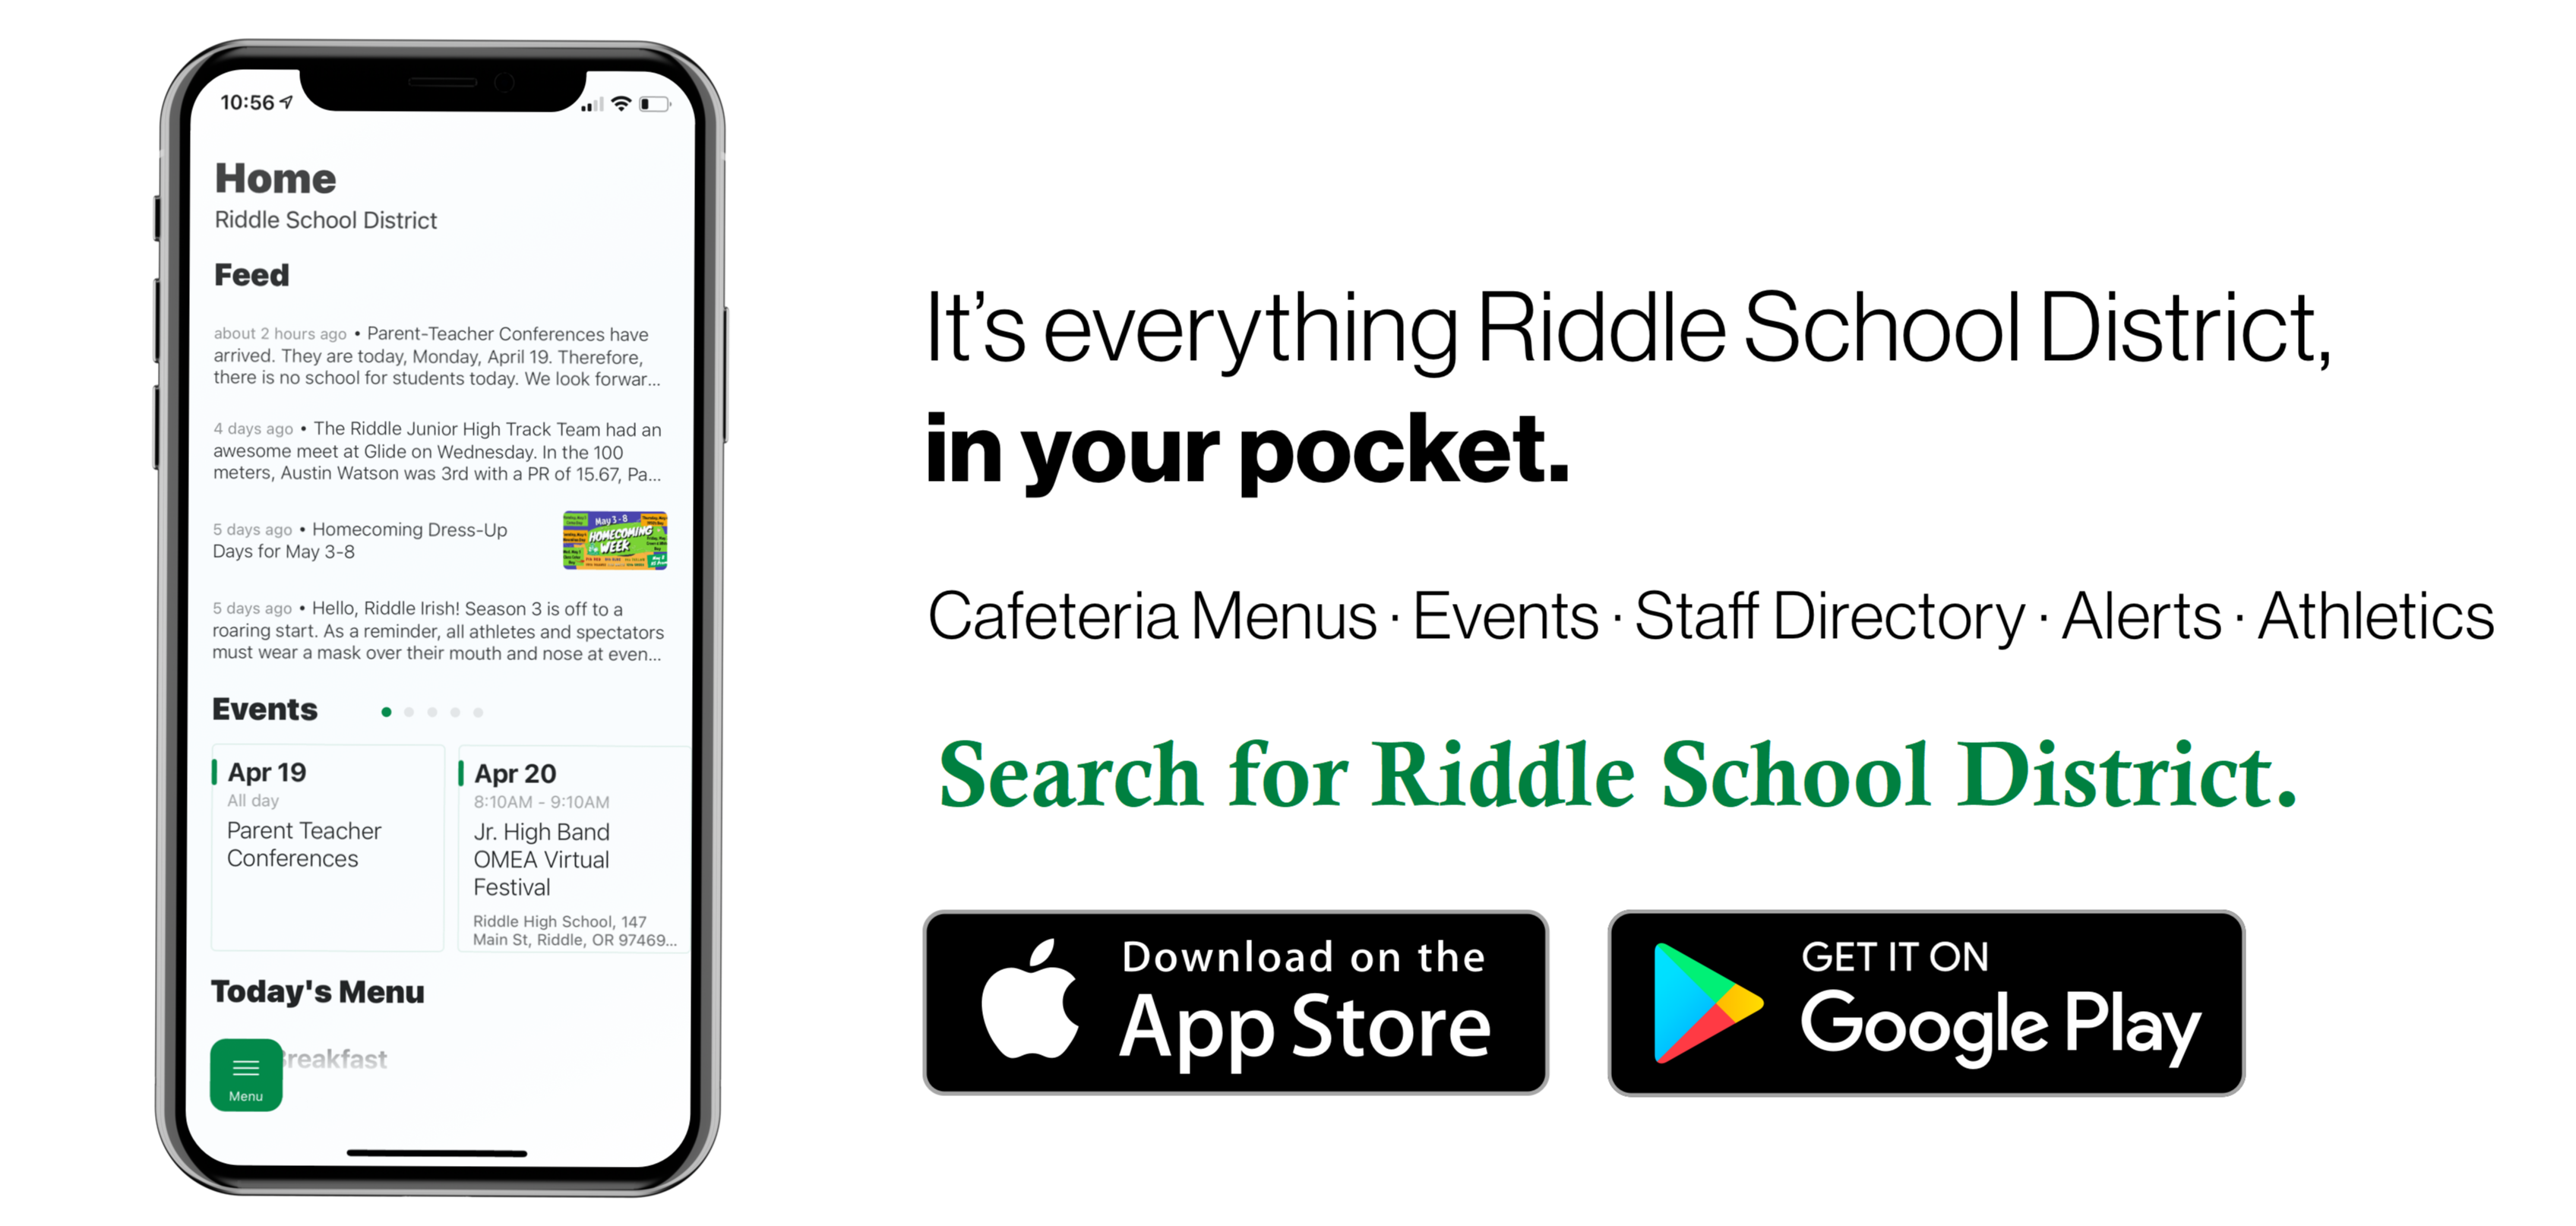 Riddle School District app is now available on the app stores.